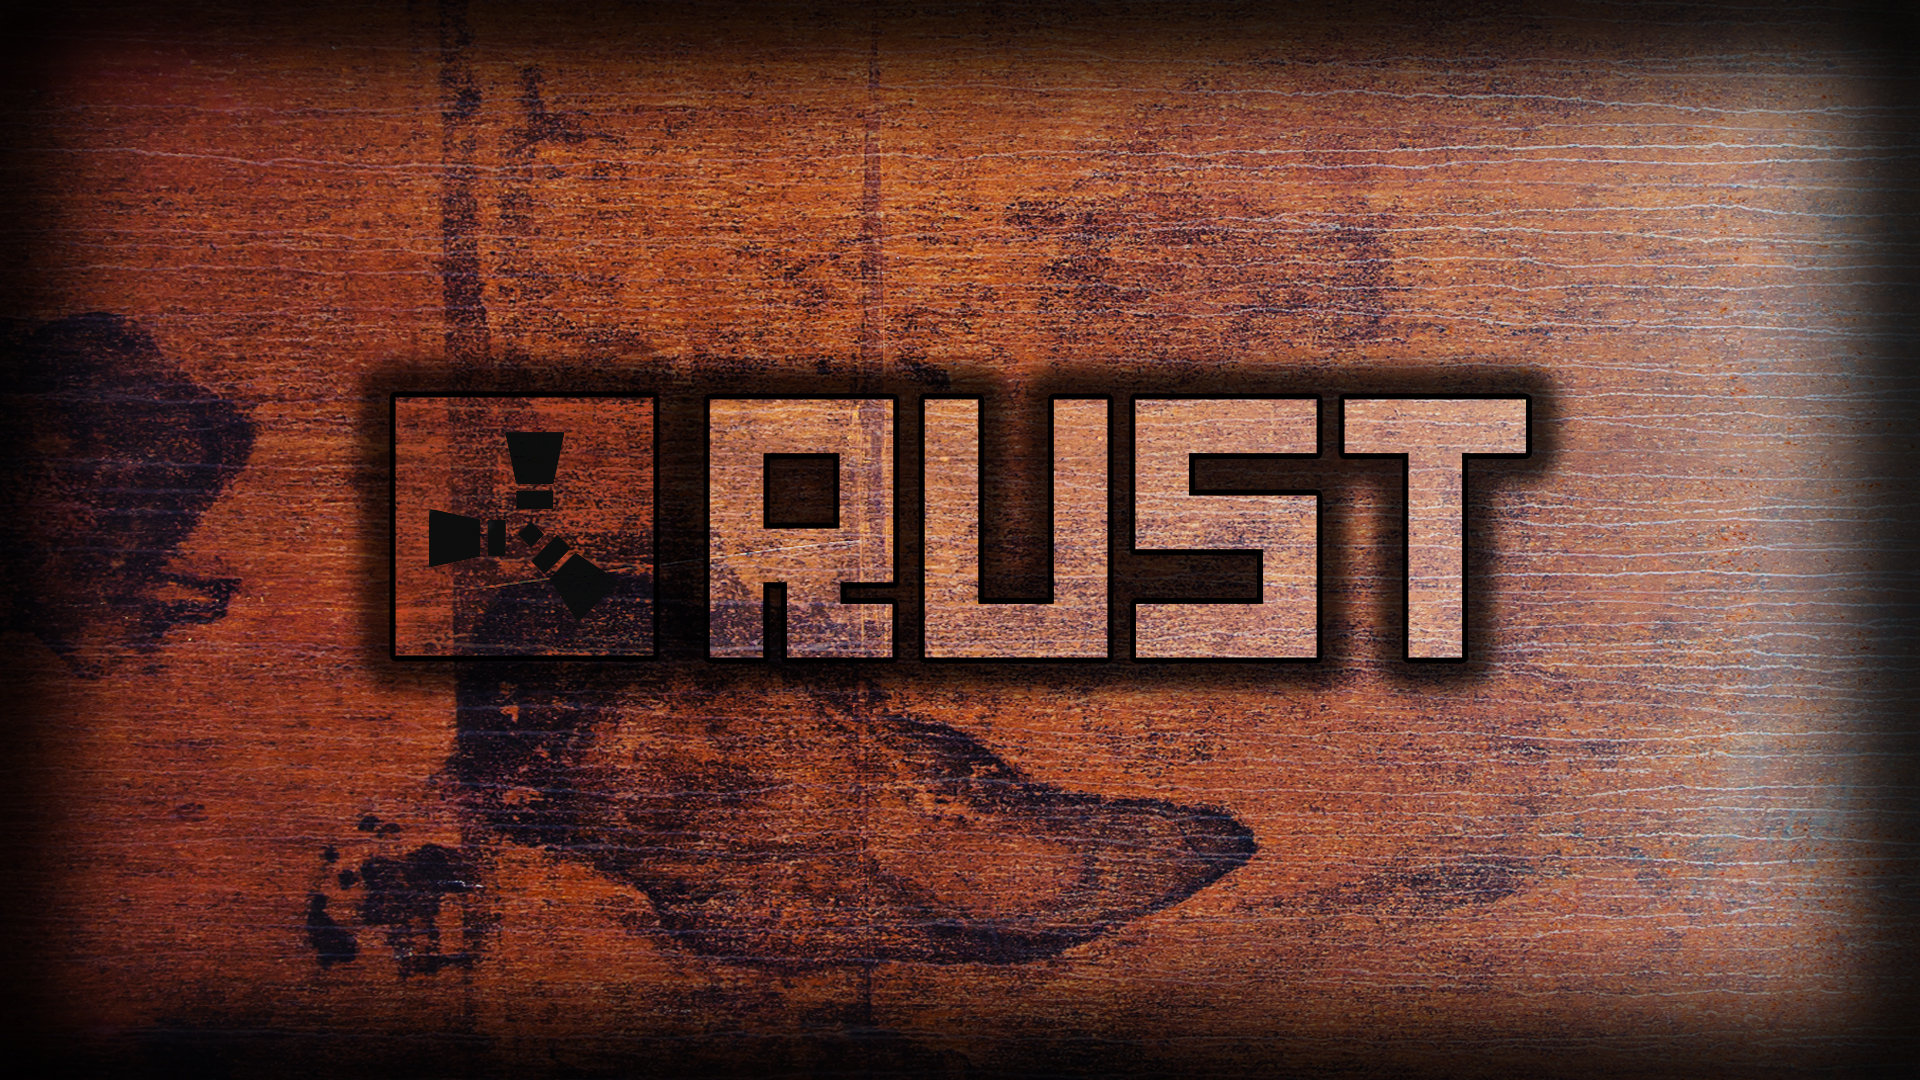 Cool Video Game Wallpapers Hd Download Rust Game Wallpaper Gallery